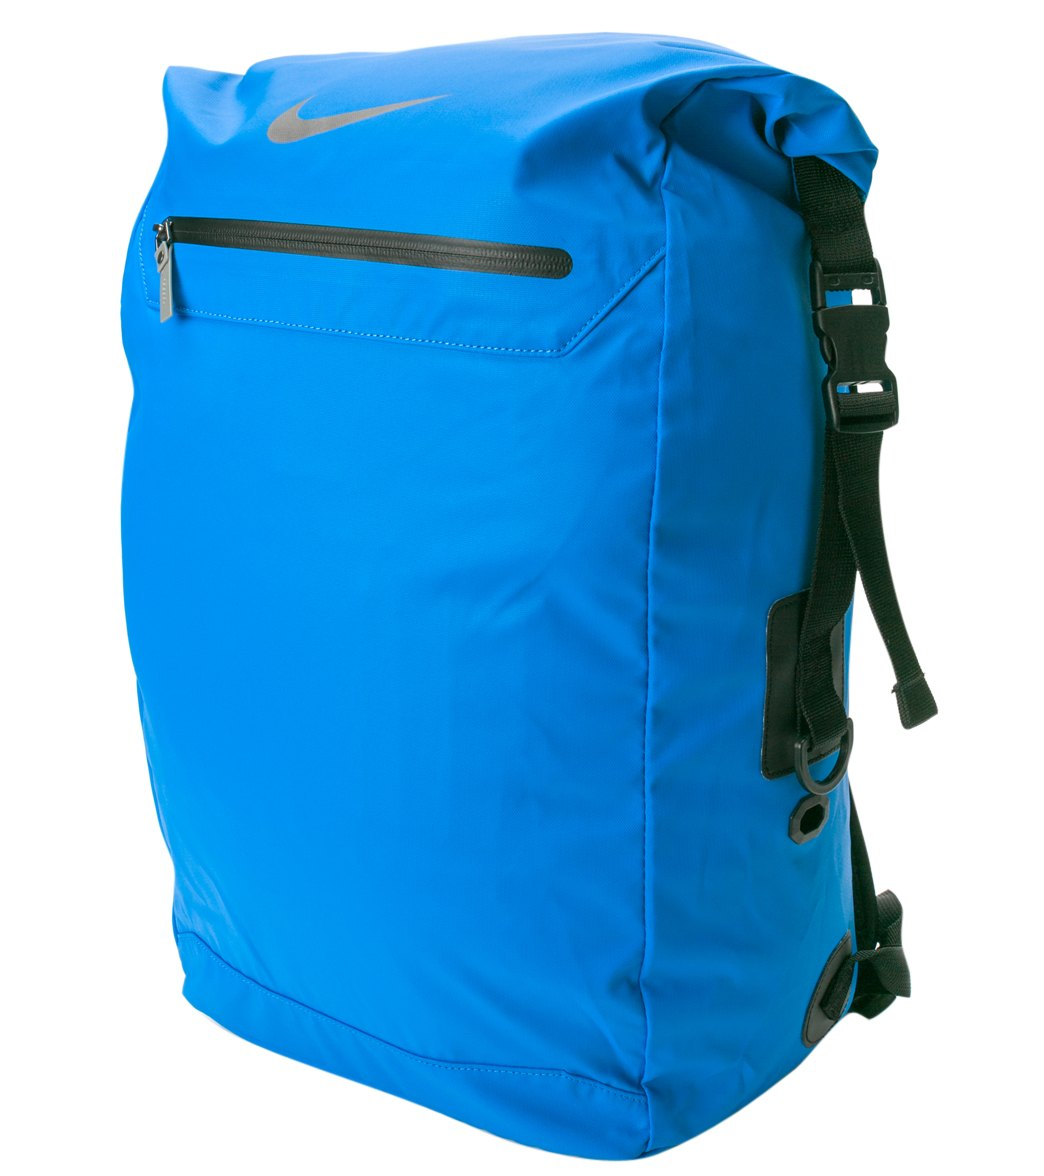 c97dc4429e Nike Swim Swimmers Backpack at SwimOutlet.com - Free Shipping